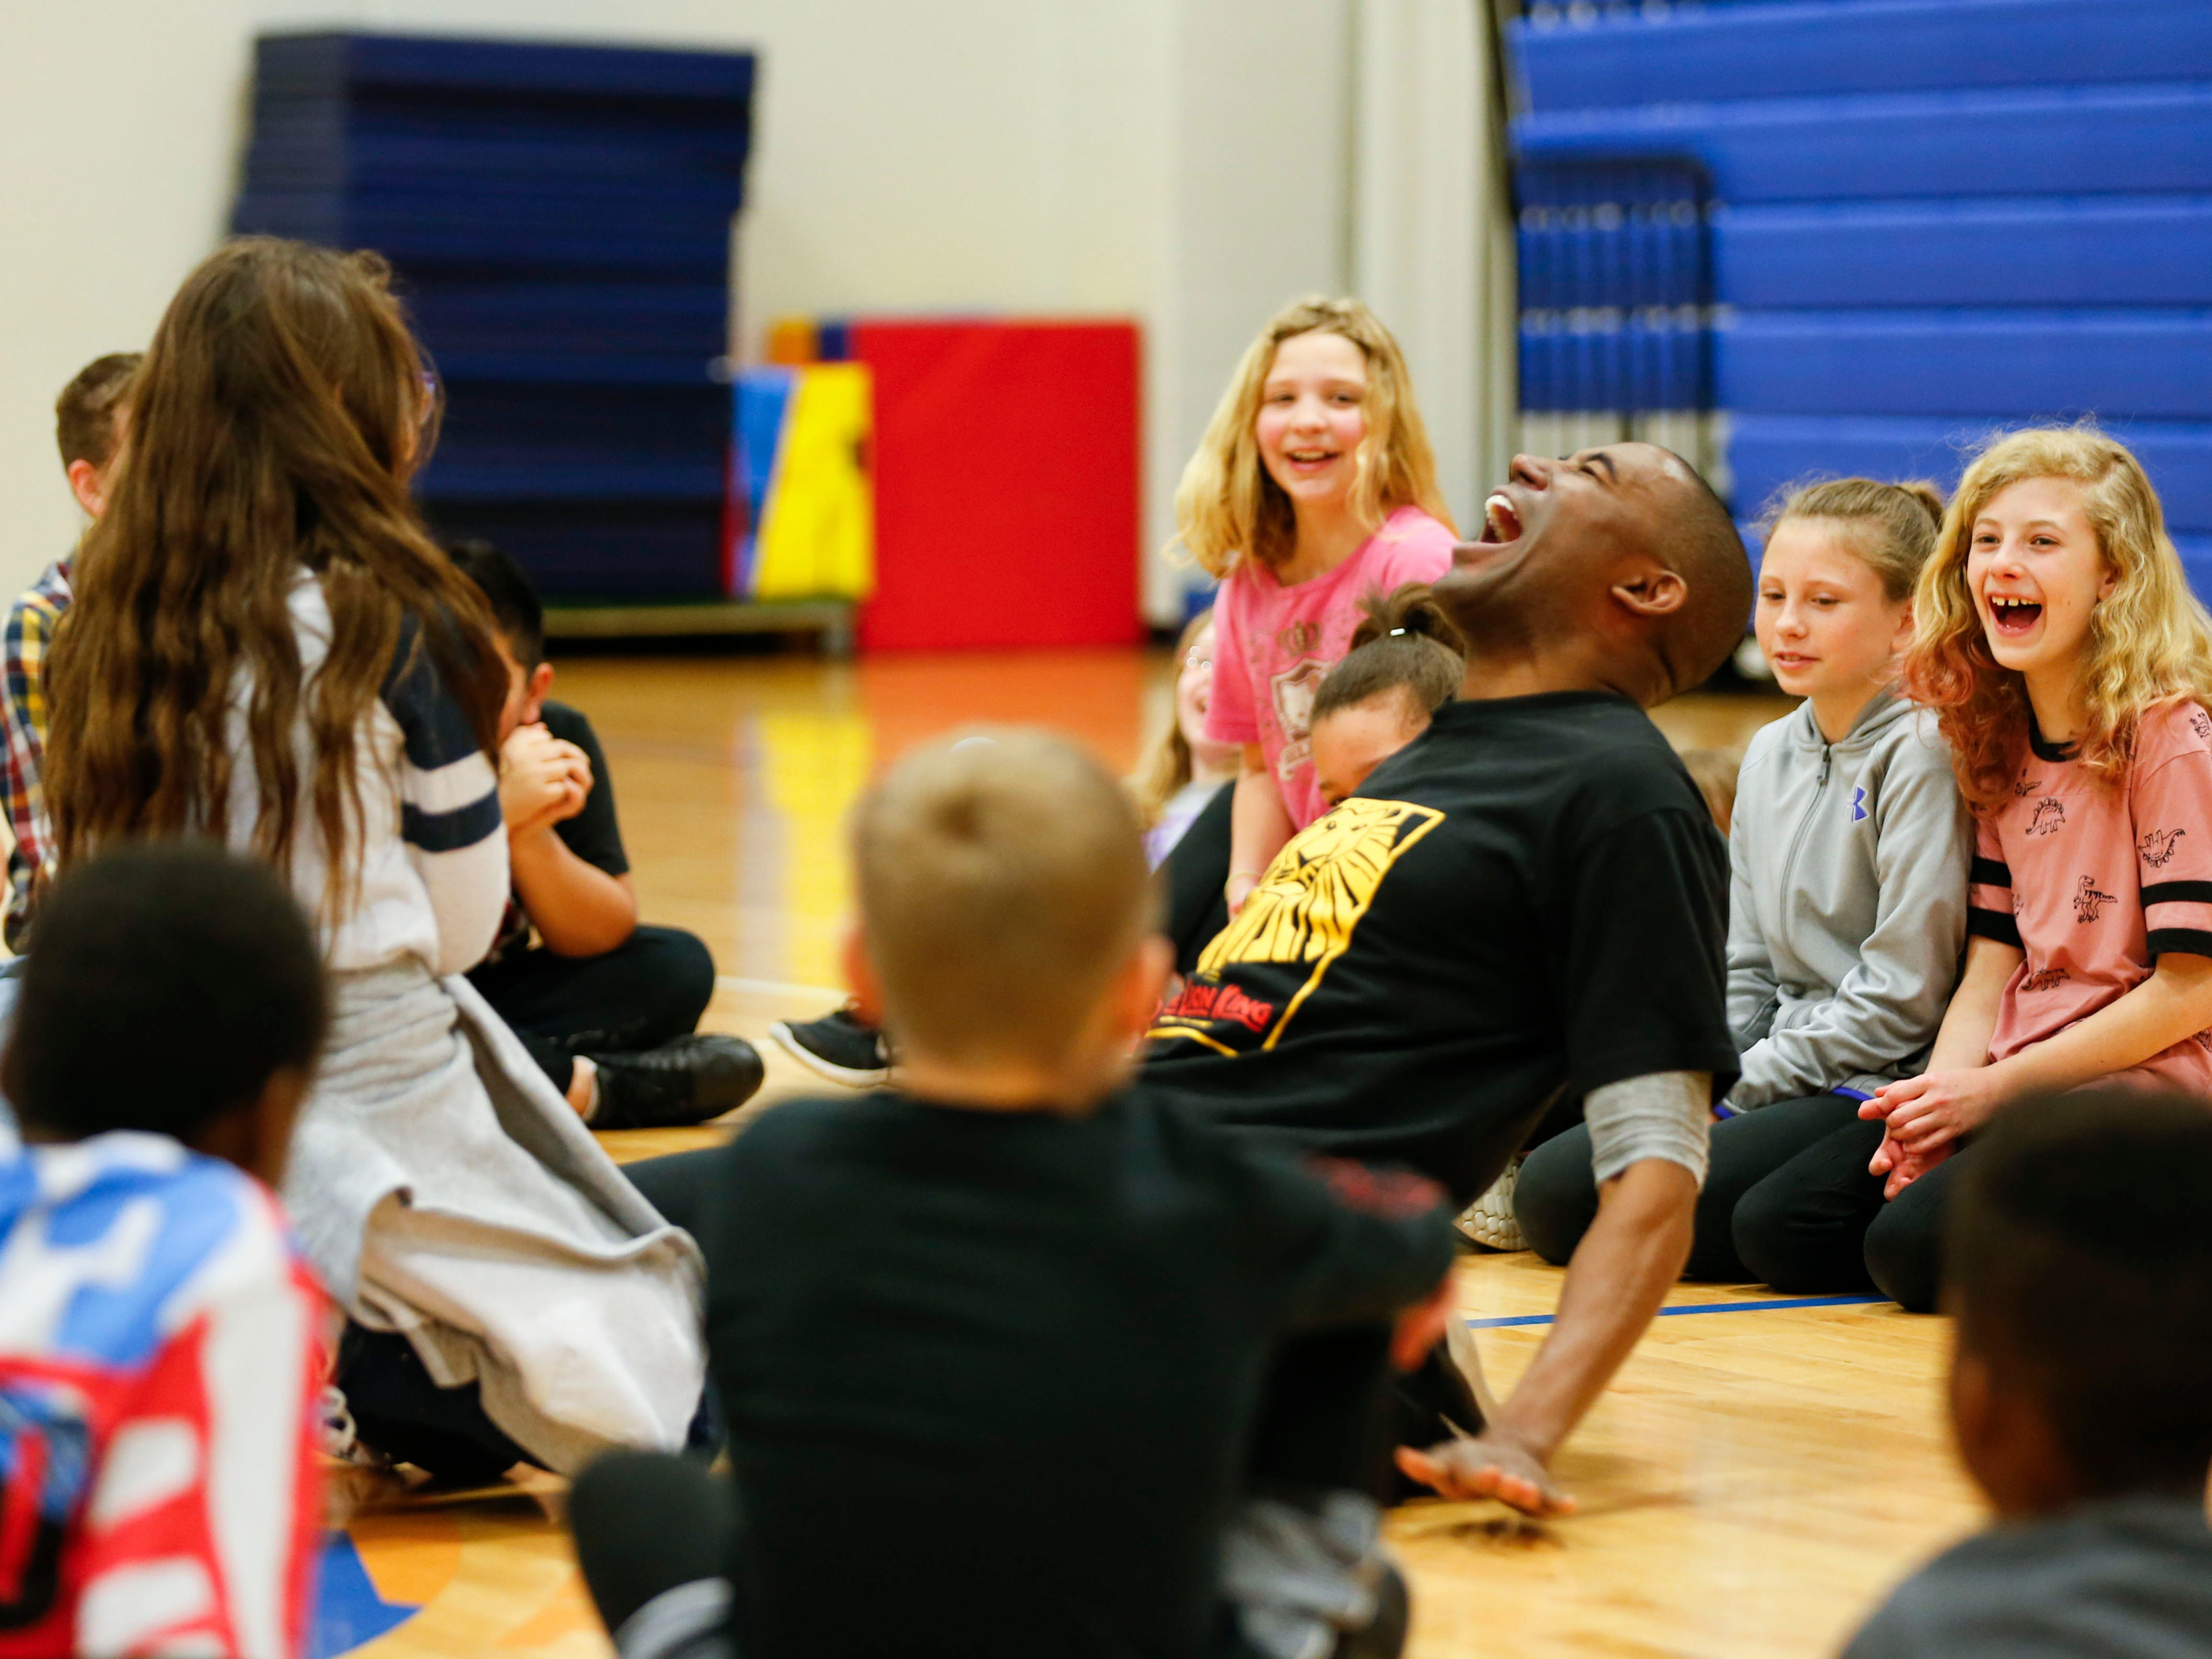 """""""Lion King"""" cast member Andrew Arrington show Fremont Elementary students his hyena laugh during a stop at the school on Tuesday, March 5, 2019."""